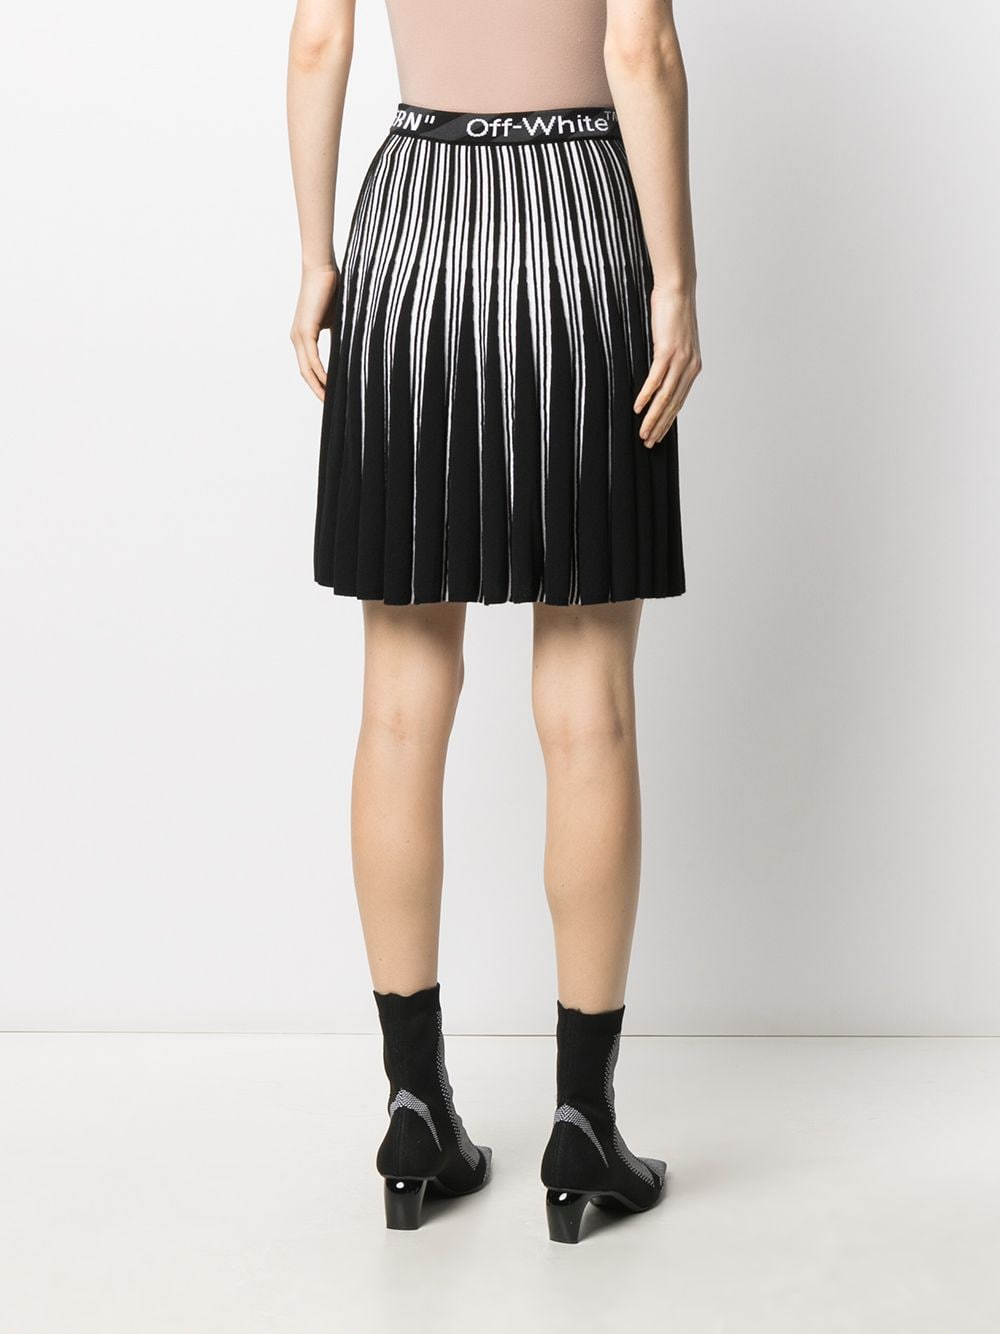 OFF-WHITE WOMEN BOLD MINI SKIRT